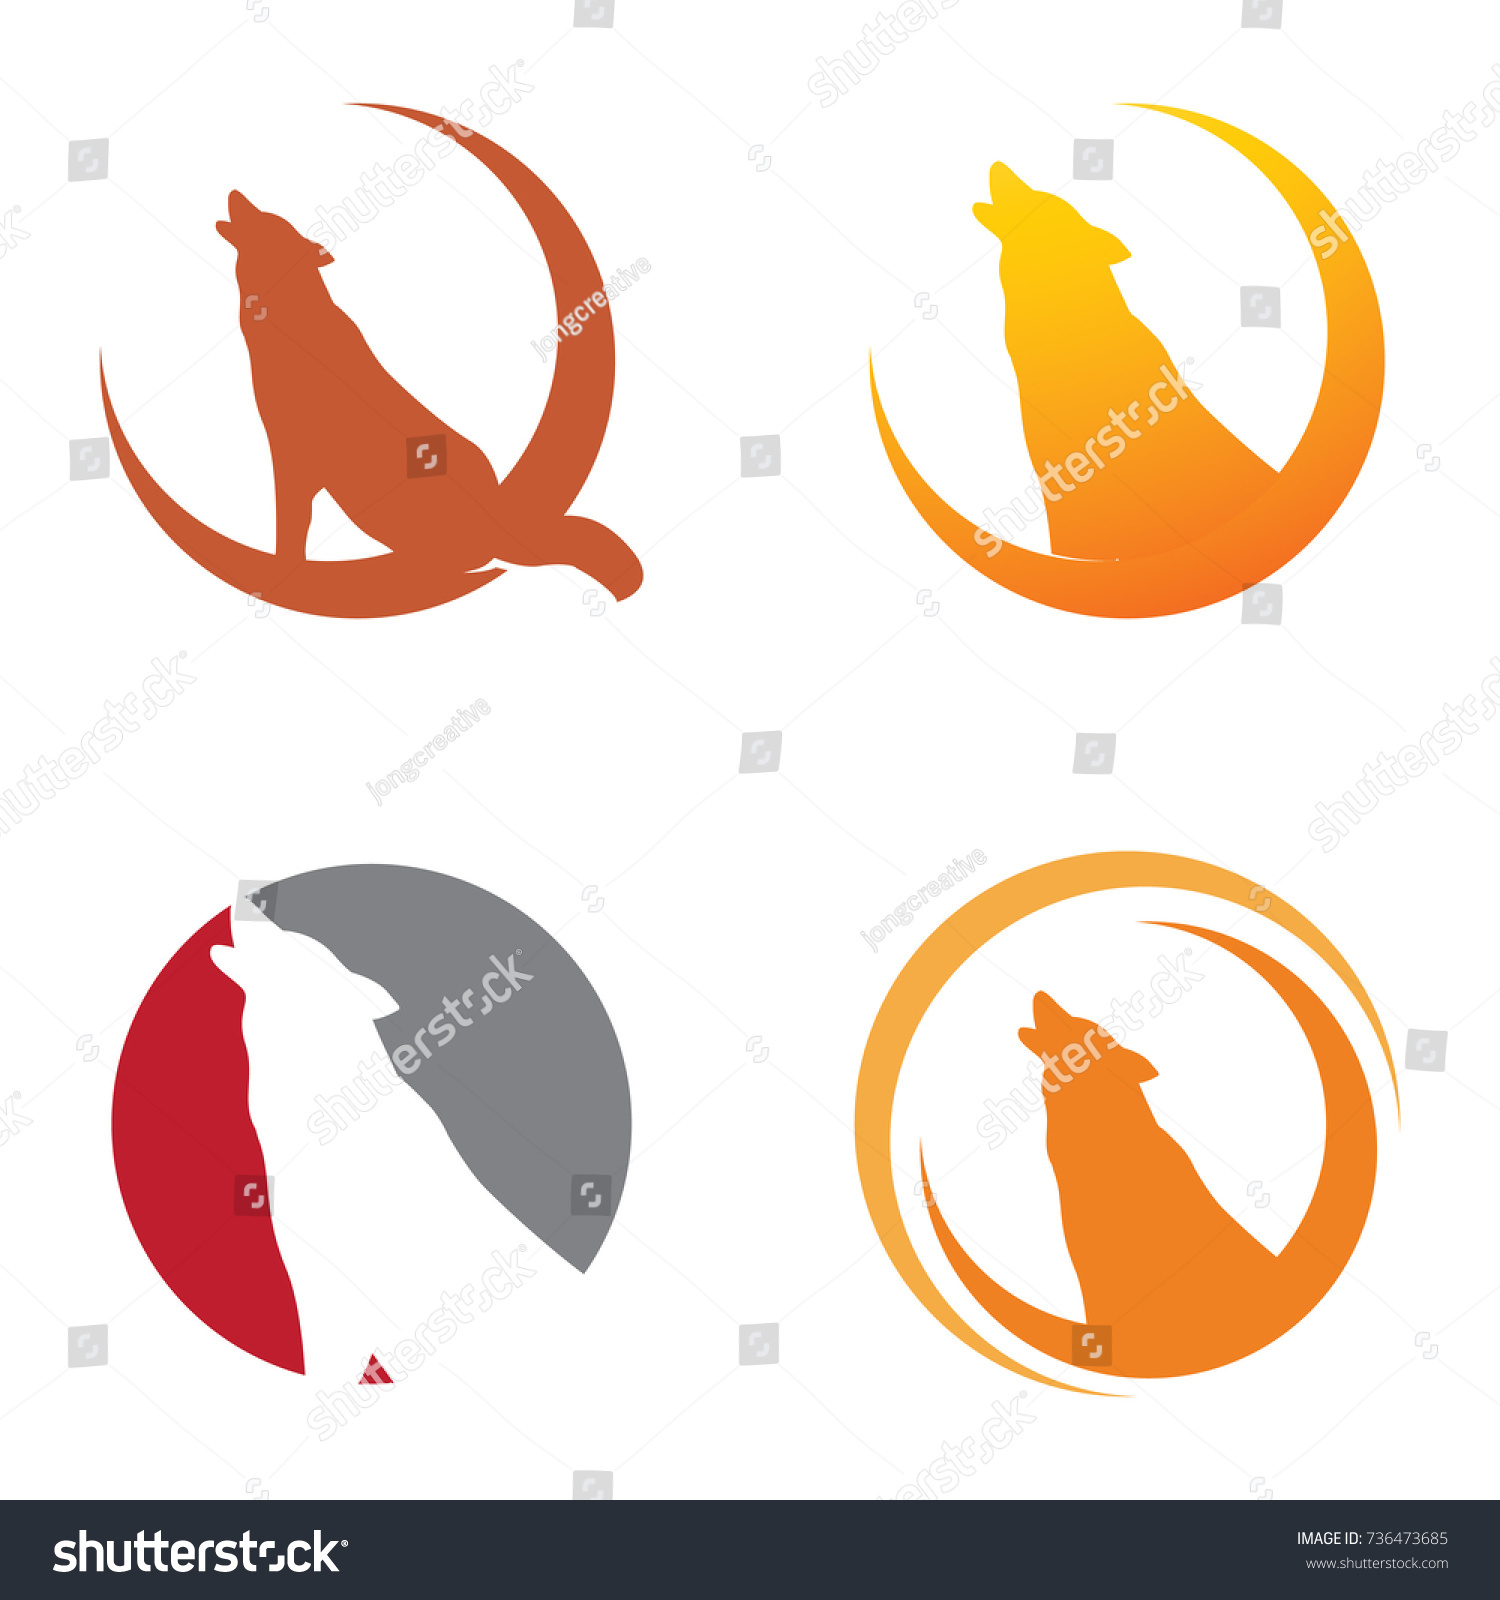 Wolf howling crescent moon symbol stock vector 736473685 wolf howling at the crescent moon symbol biocorpaavc Gallery